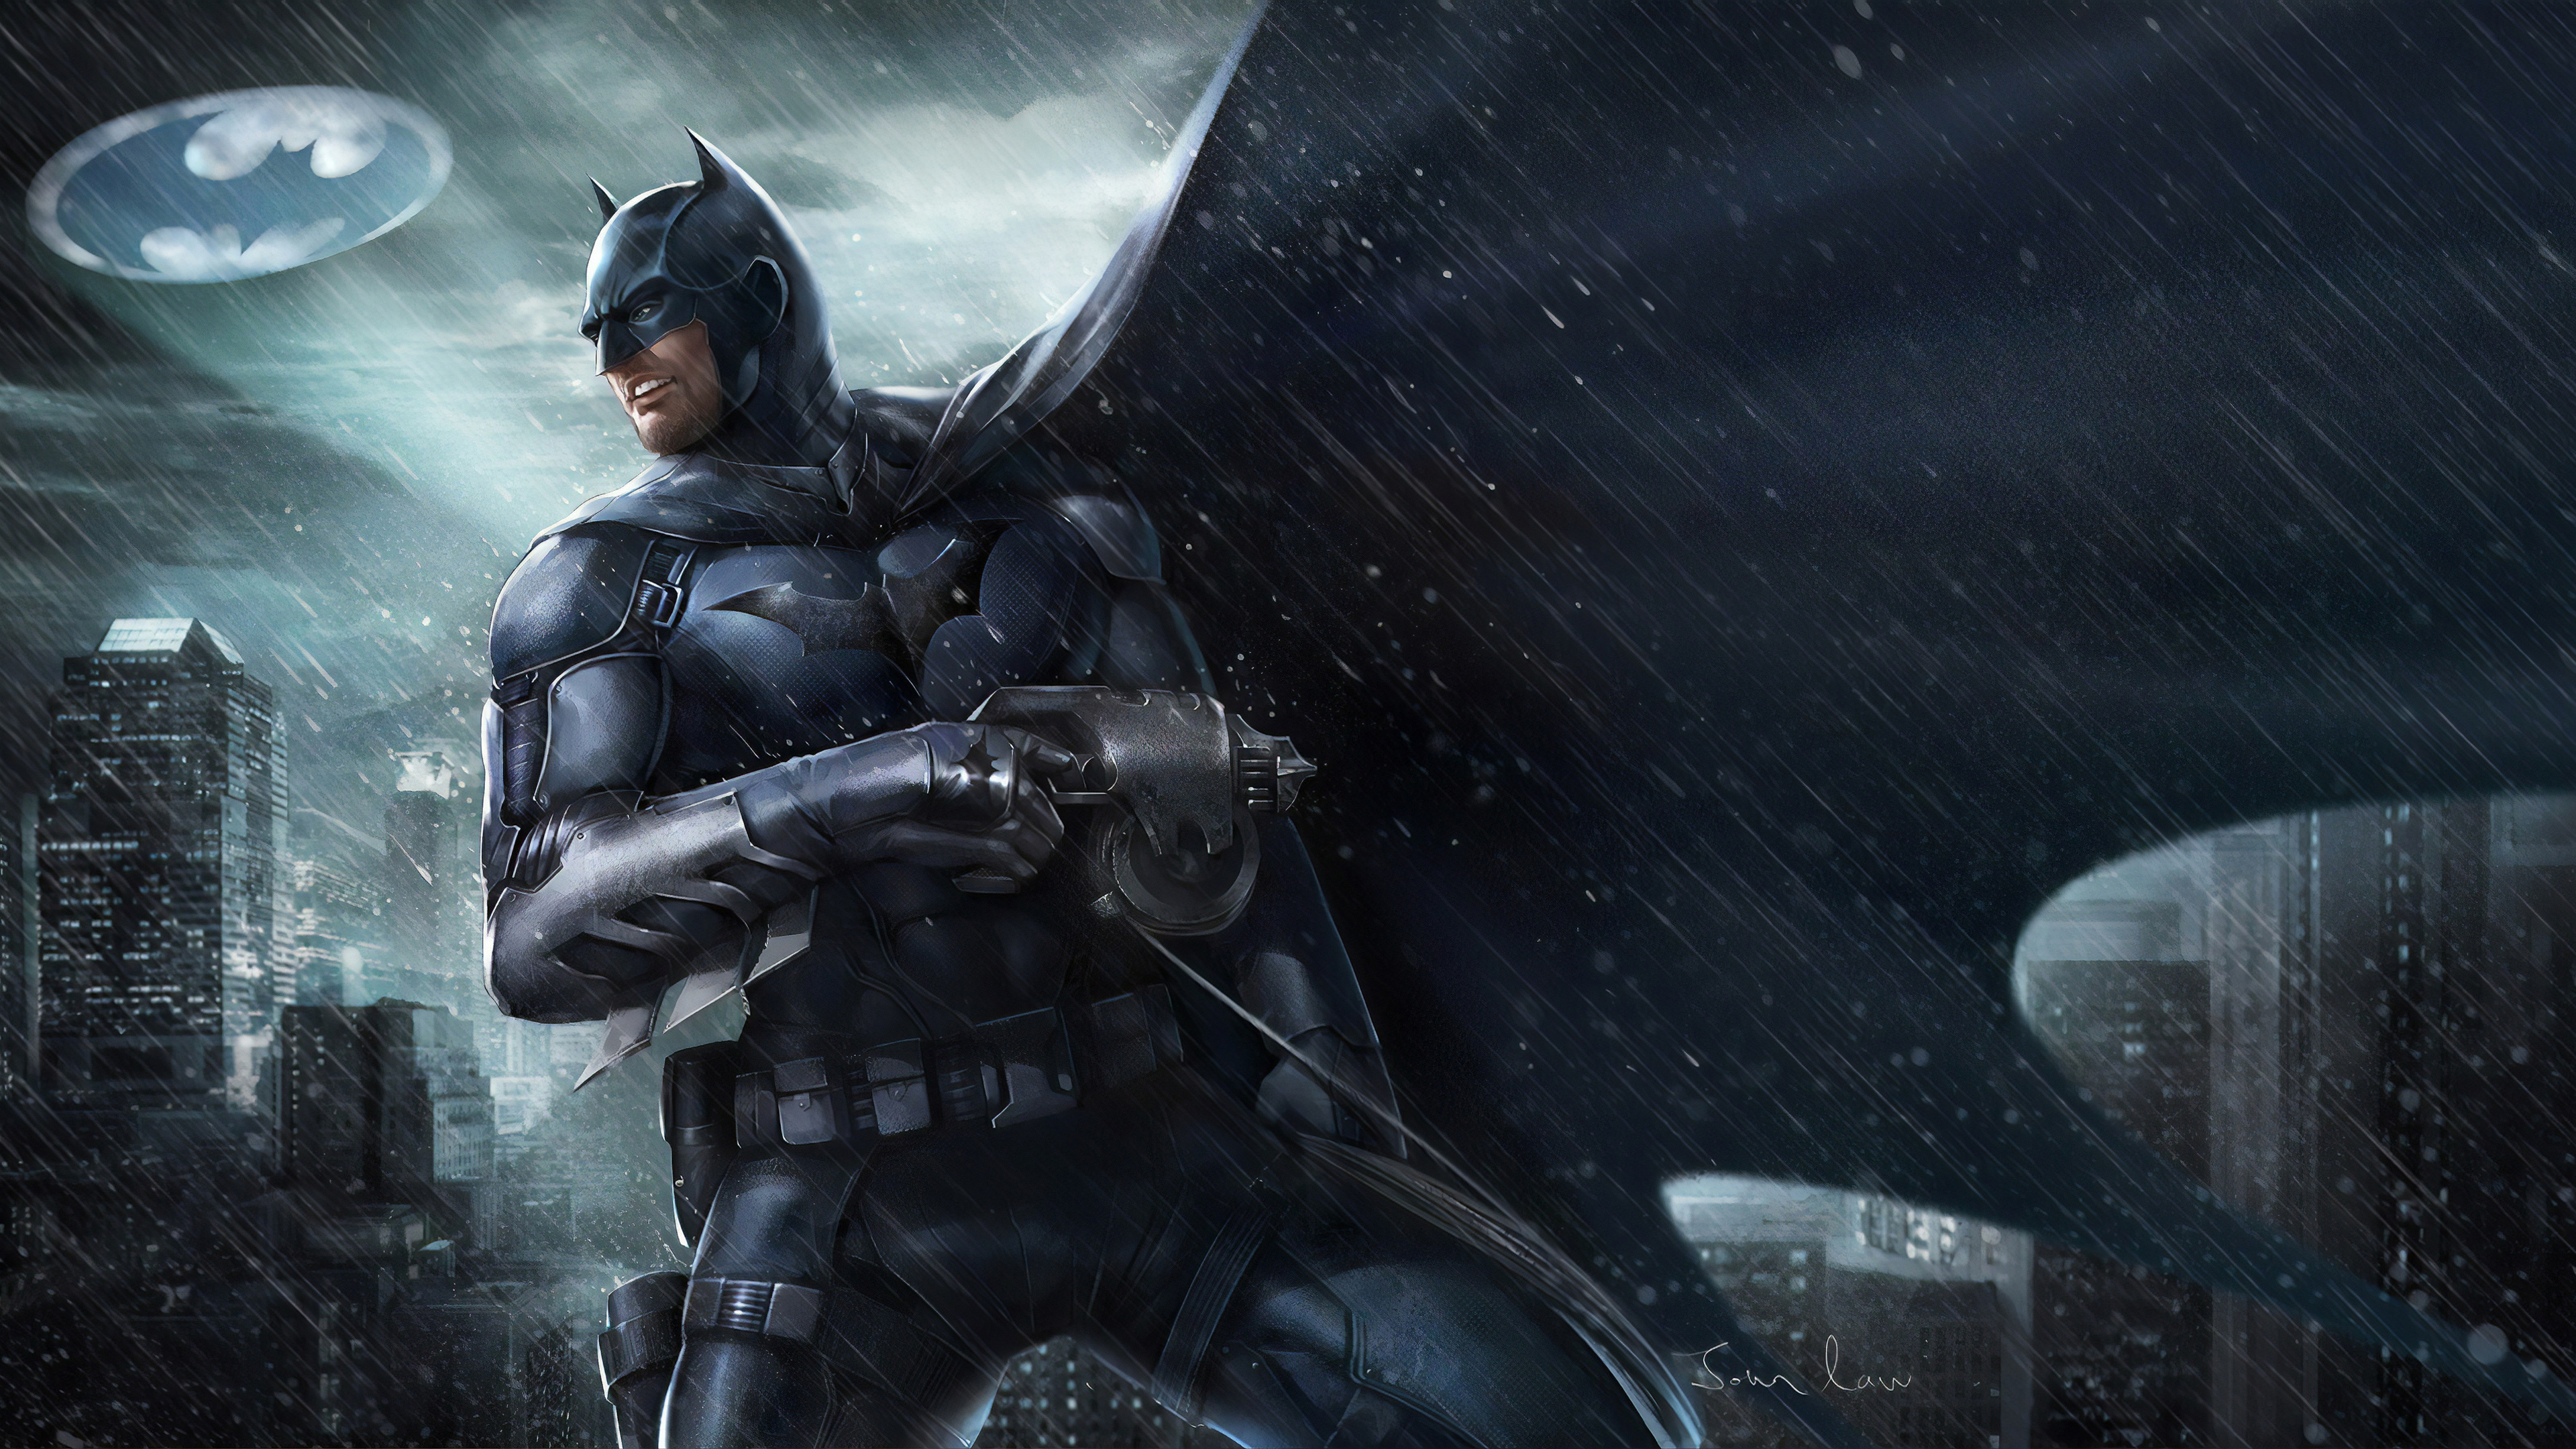 4k batman new artwork 1560533567 - 4k Batman New Artwork - superheroes wallpapers, hd-wallpapers, digital art wallpapers, deviantart wallpapers, batman wallpapers, artwork wallpapers, 4k-wallpapers